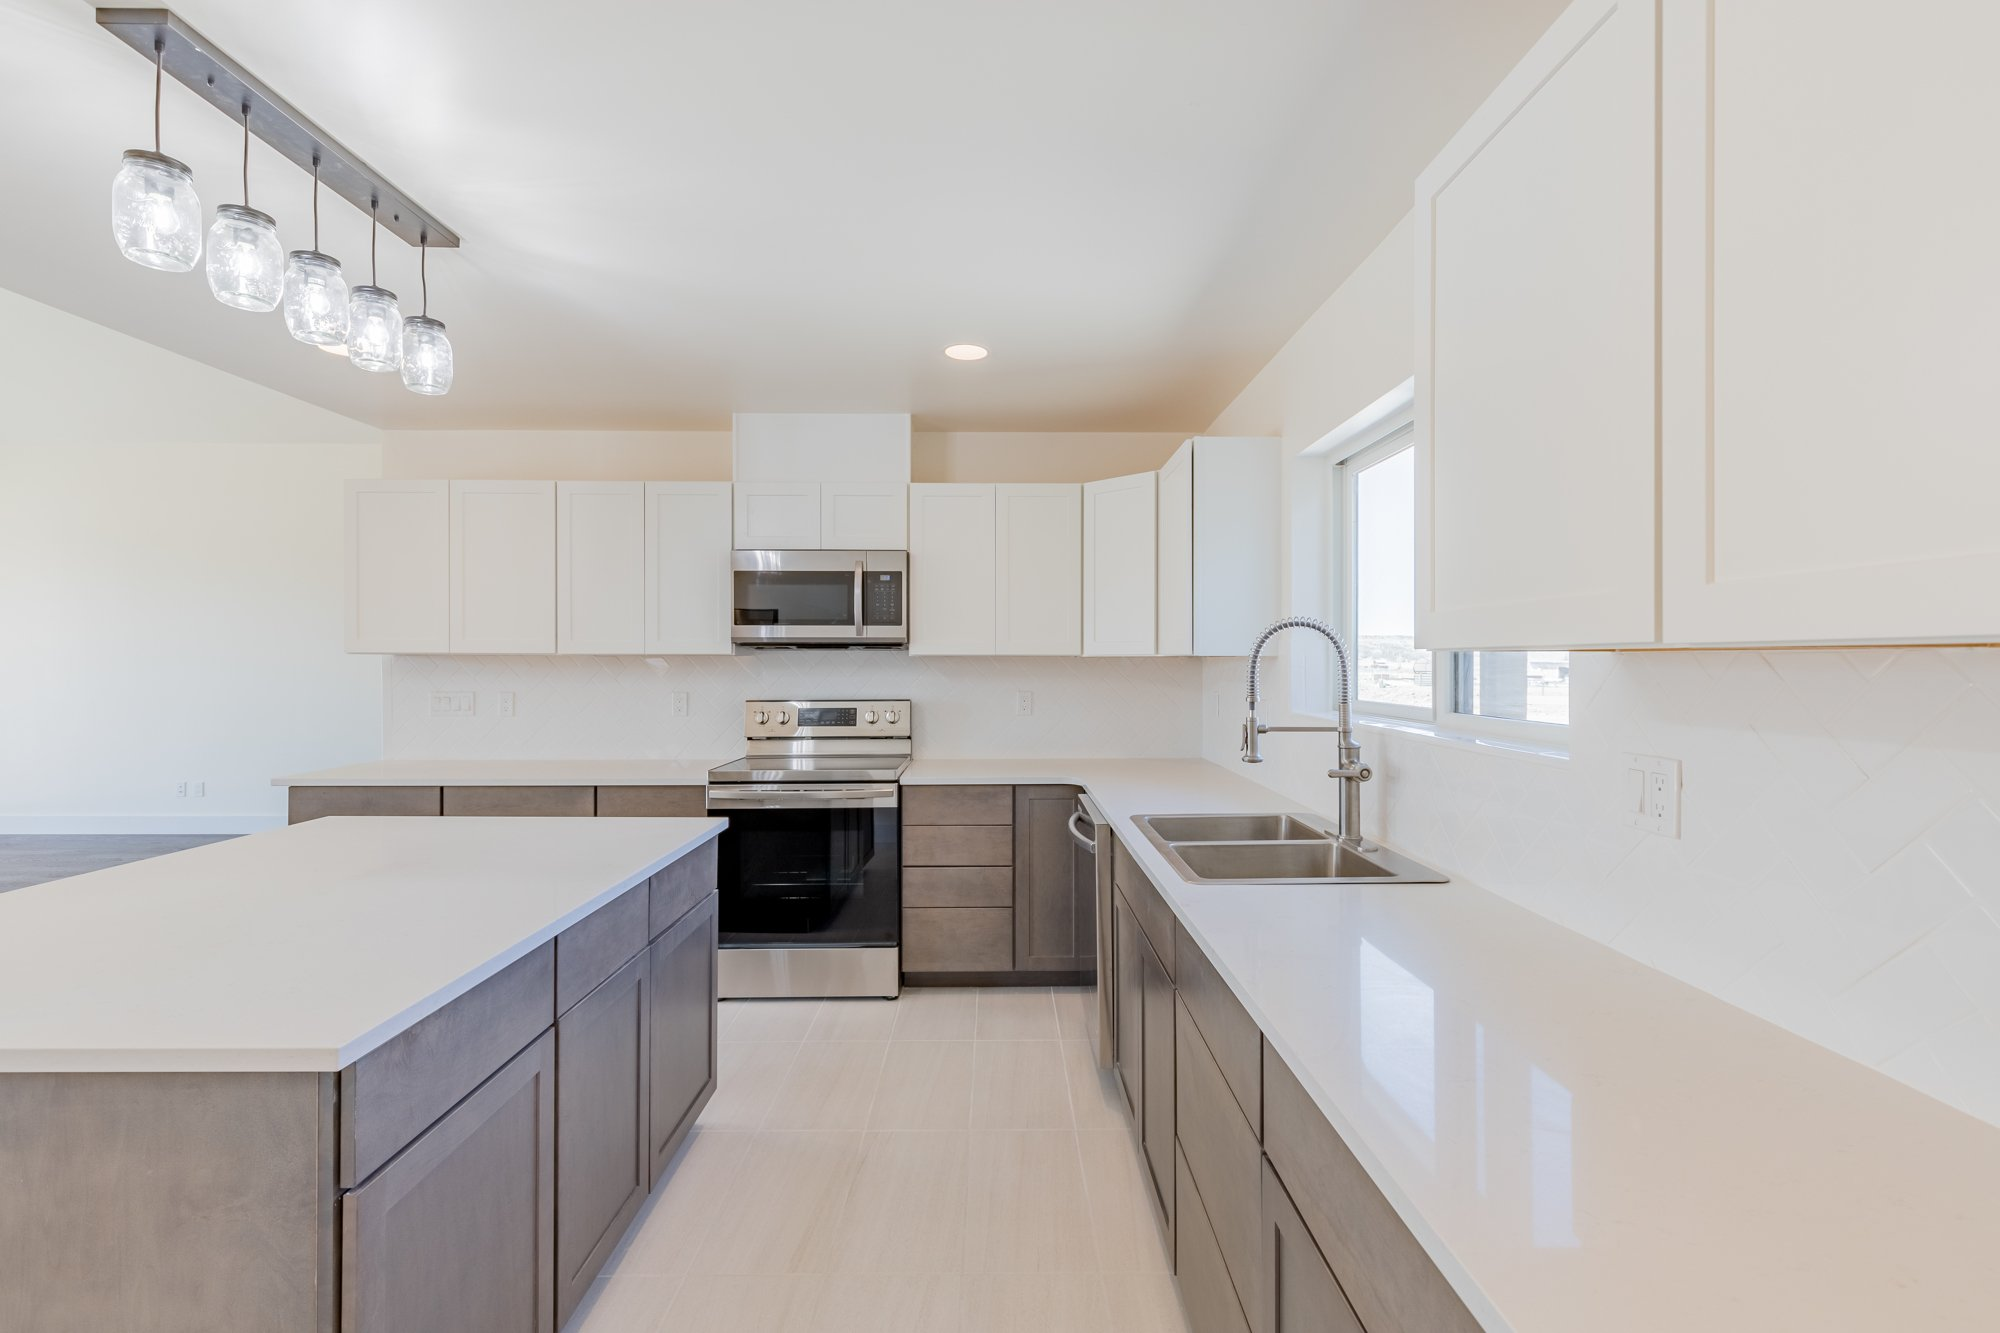 Kitchen with Quartz Countertops - 21591 Hwy 550 Montrose, CO - Atha Team Realty